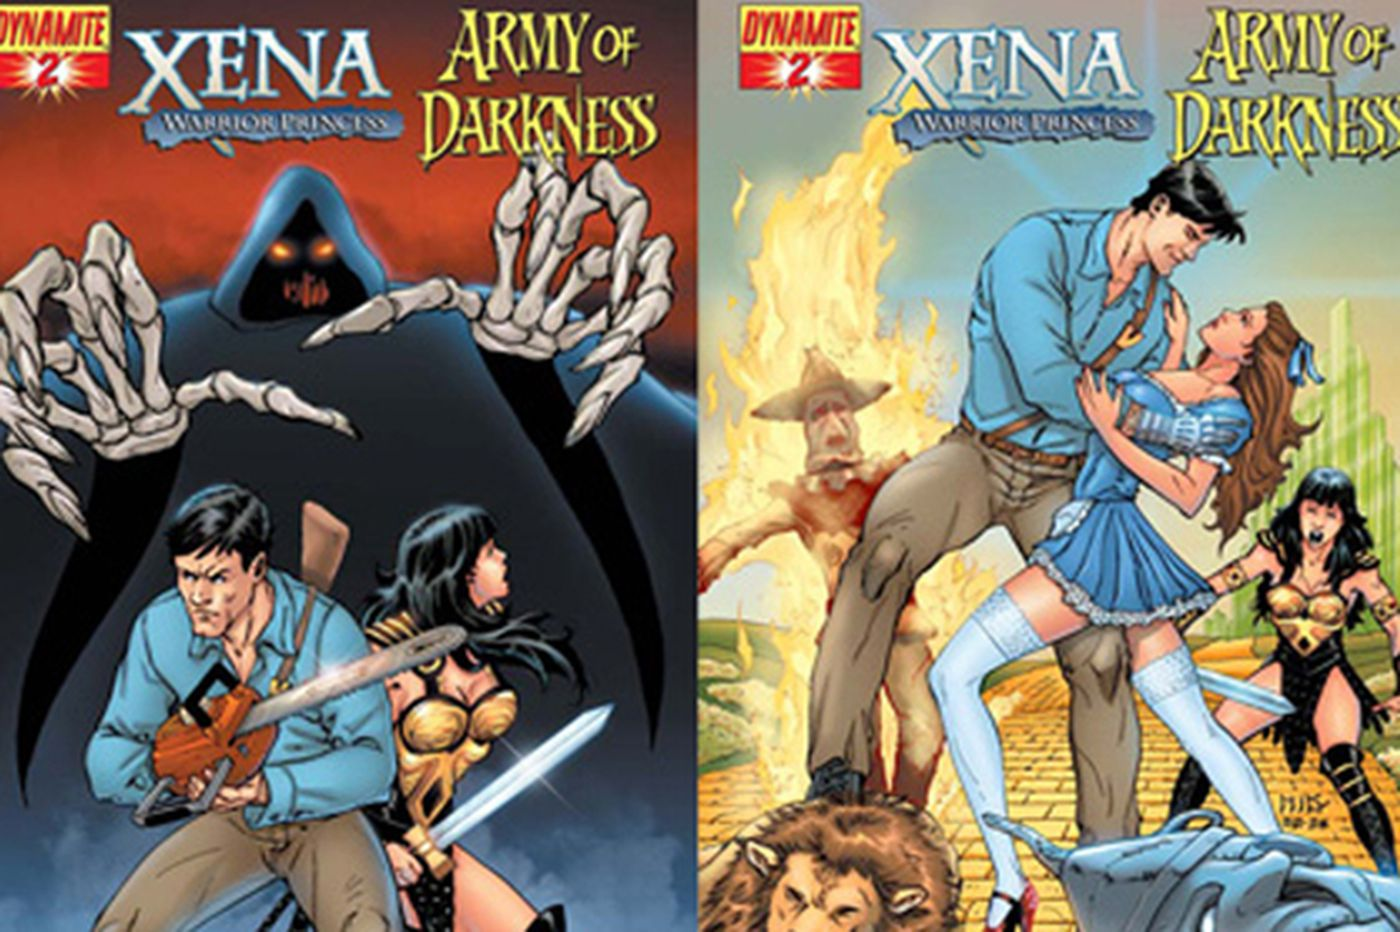 Xena and Ash: An unusual partnership